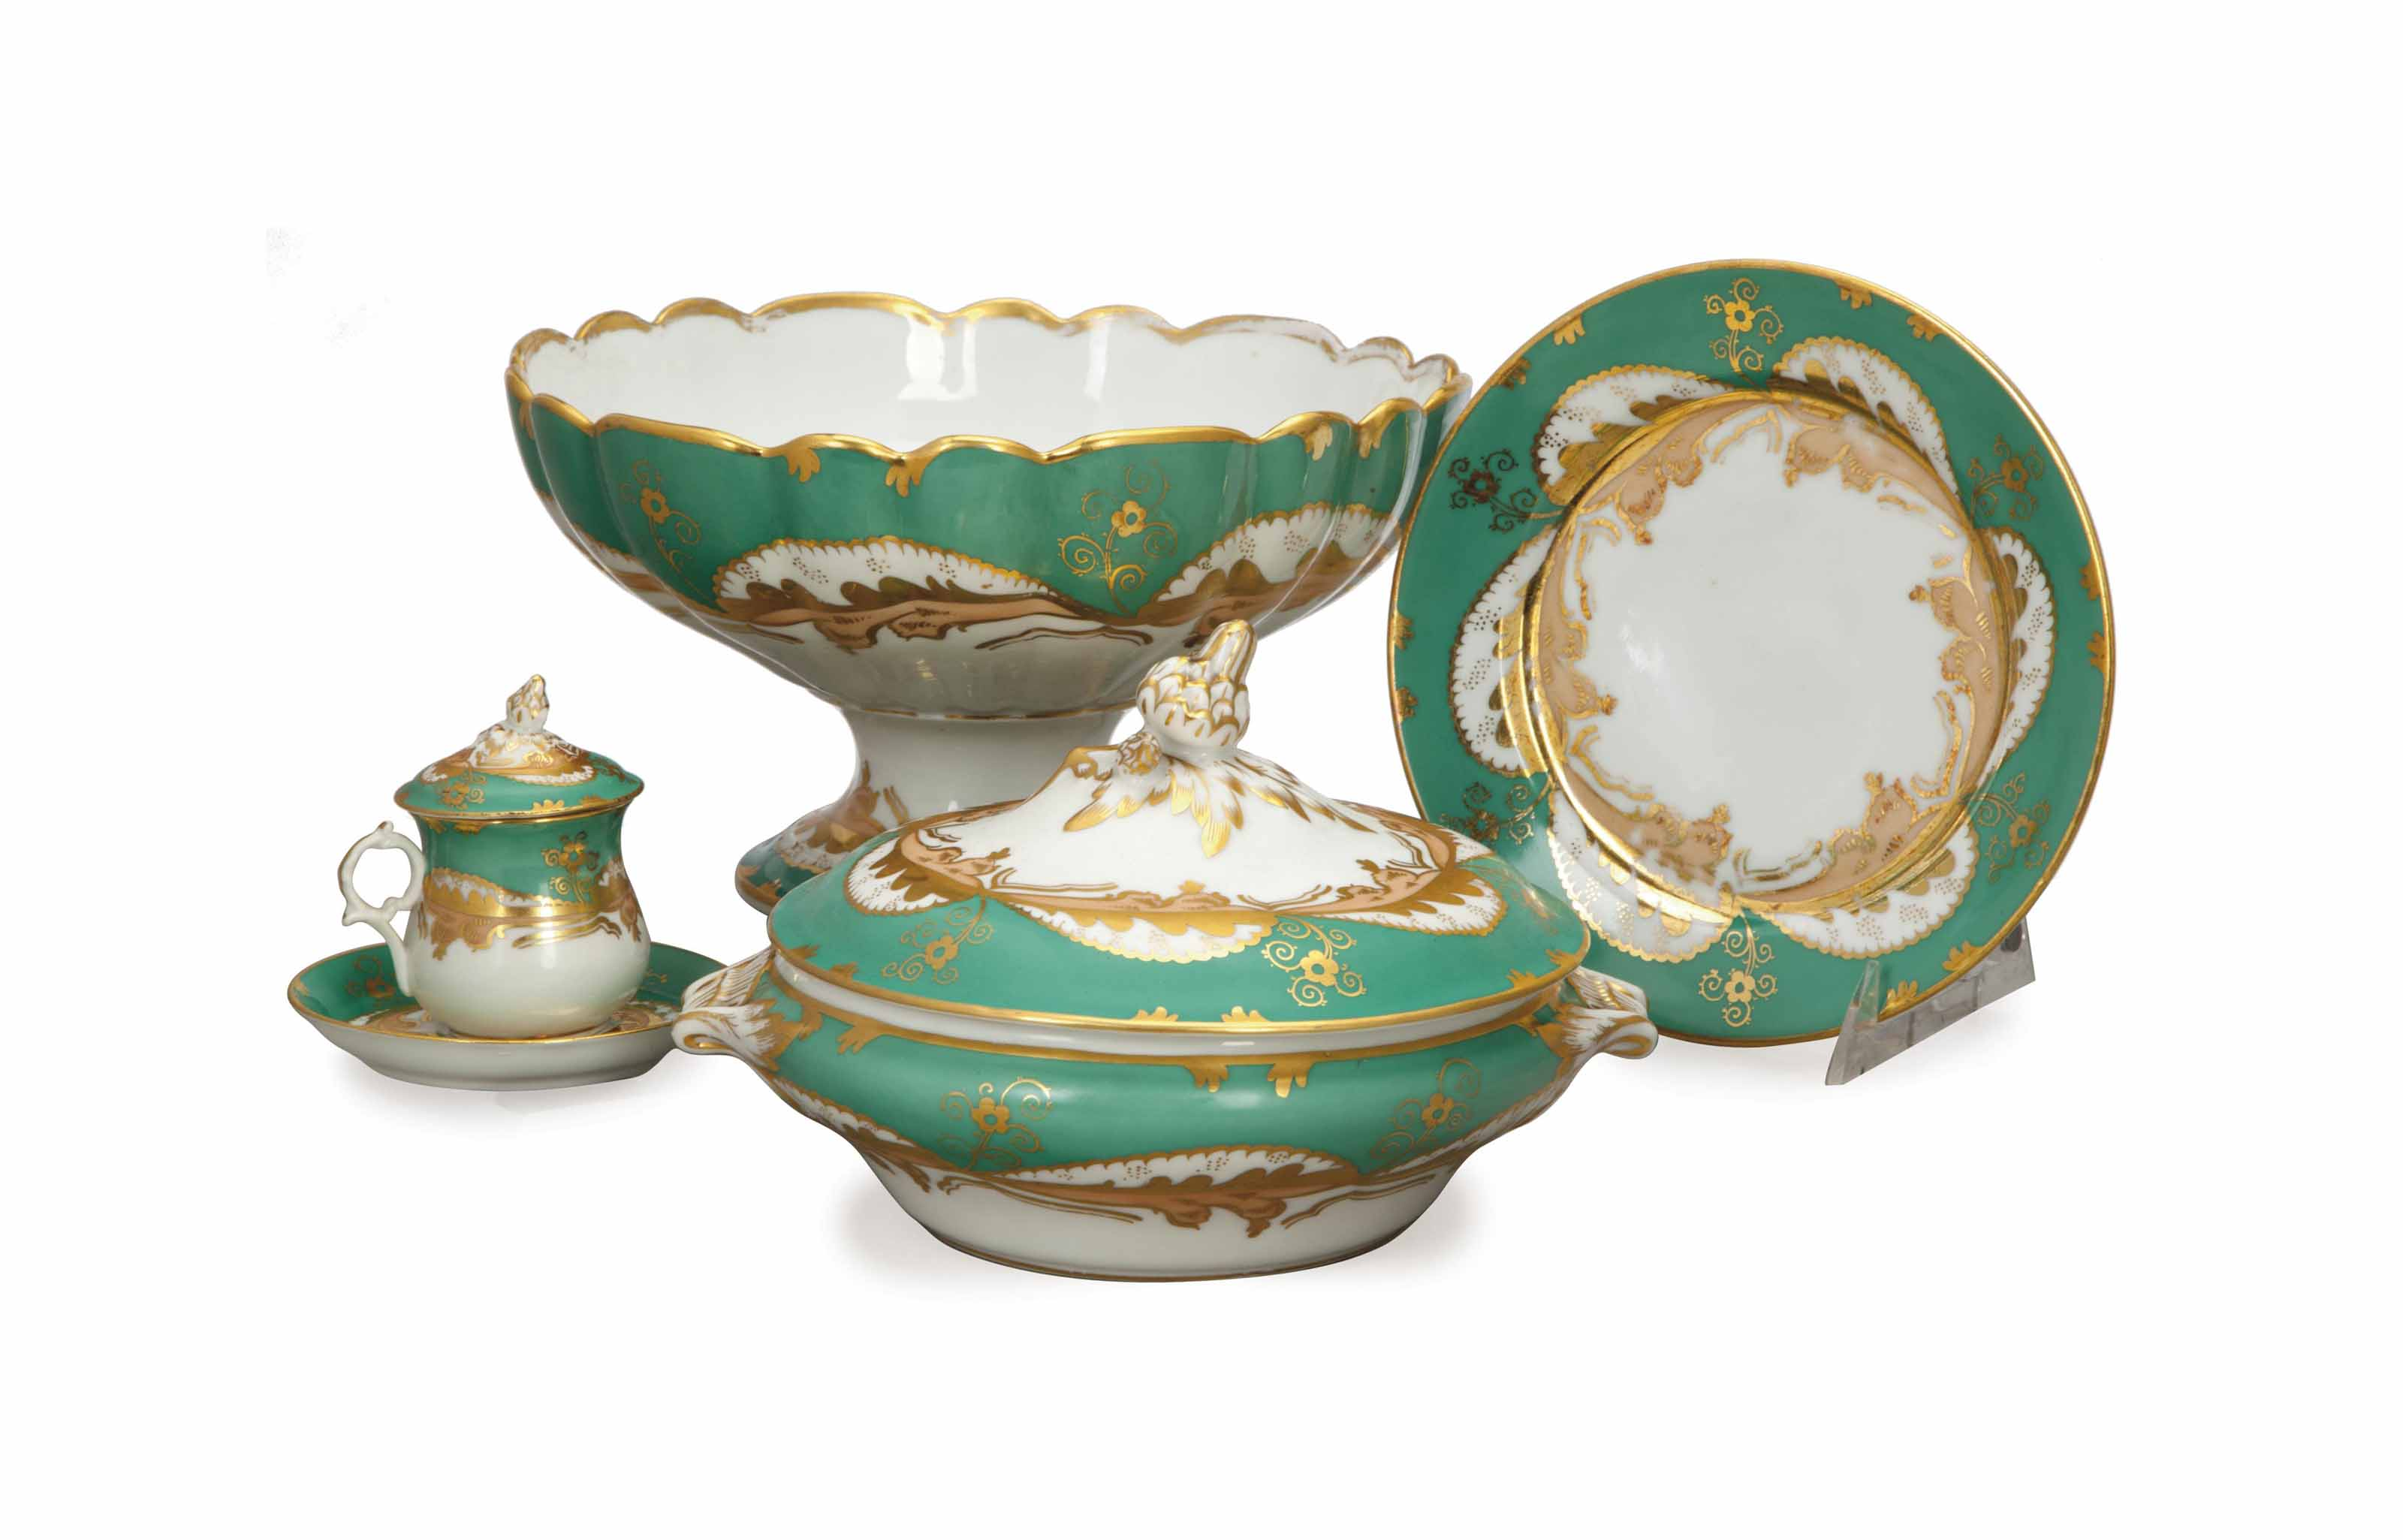 A FRENCH ASSEMBLED GREEN AND GILT DECORATED PART DINNER SERVICE,